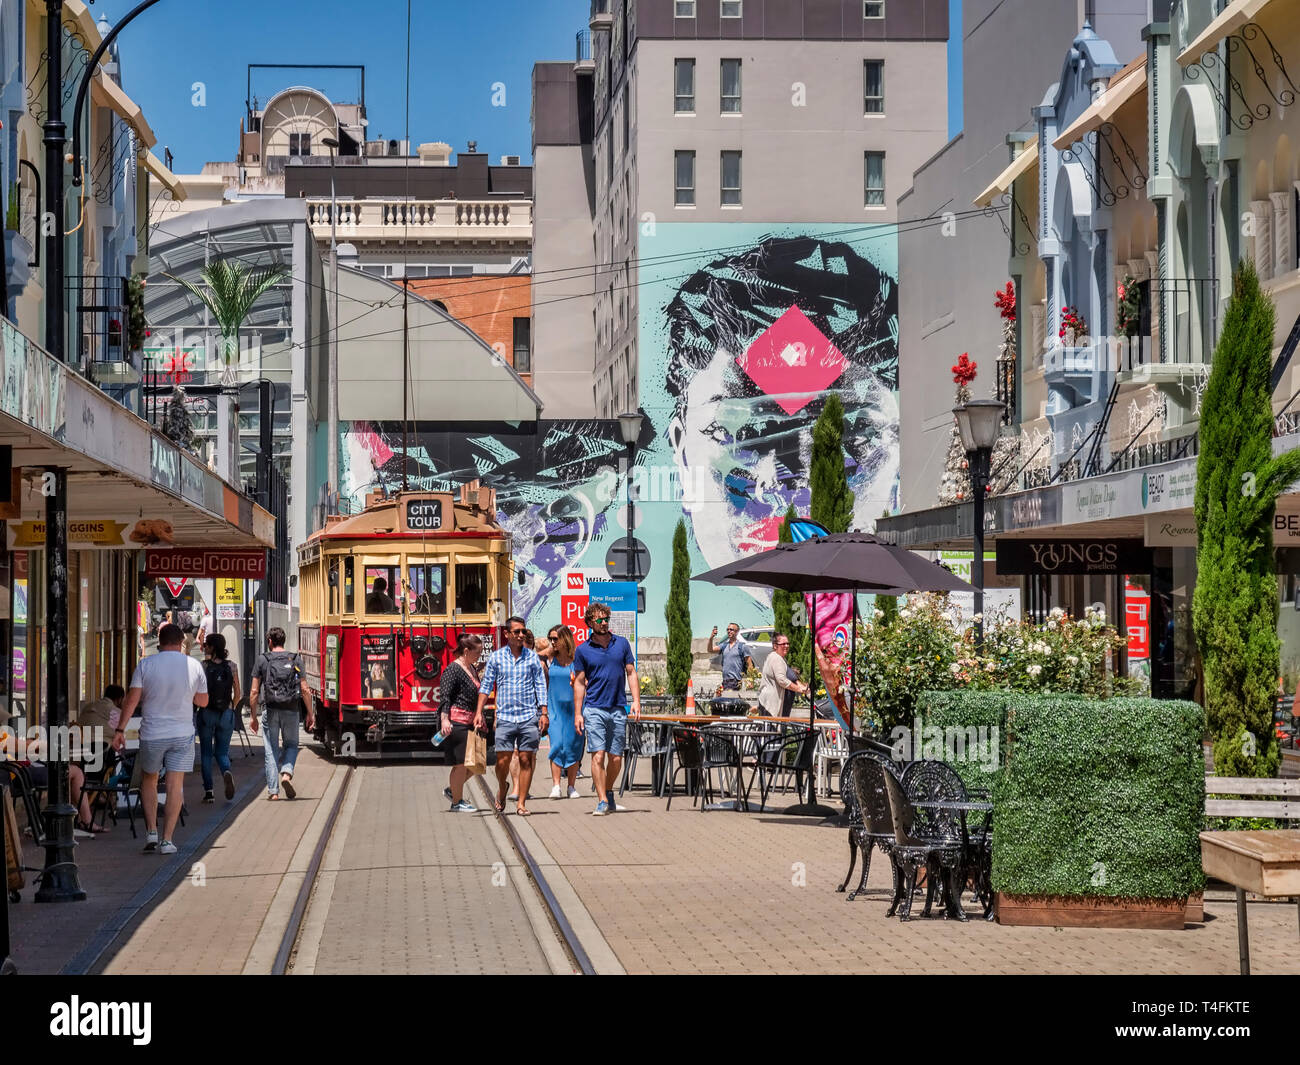 3 January 2019: Christchurch, New Zealand - New Regent Street in the centre of Christchurch, with outdoor cafes and speciality shops, and the tram rou Stock Photo